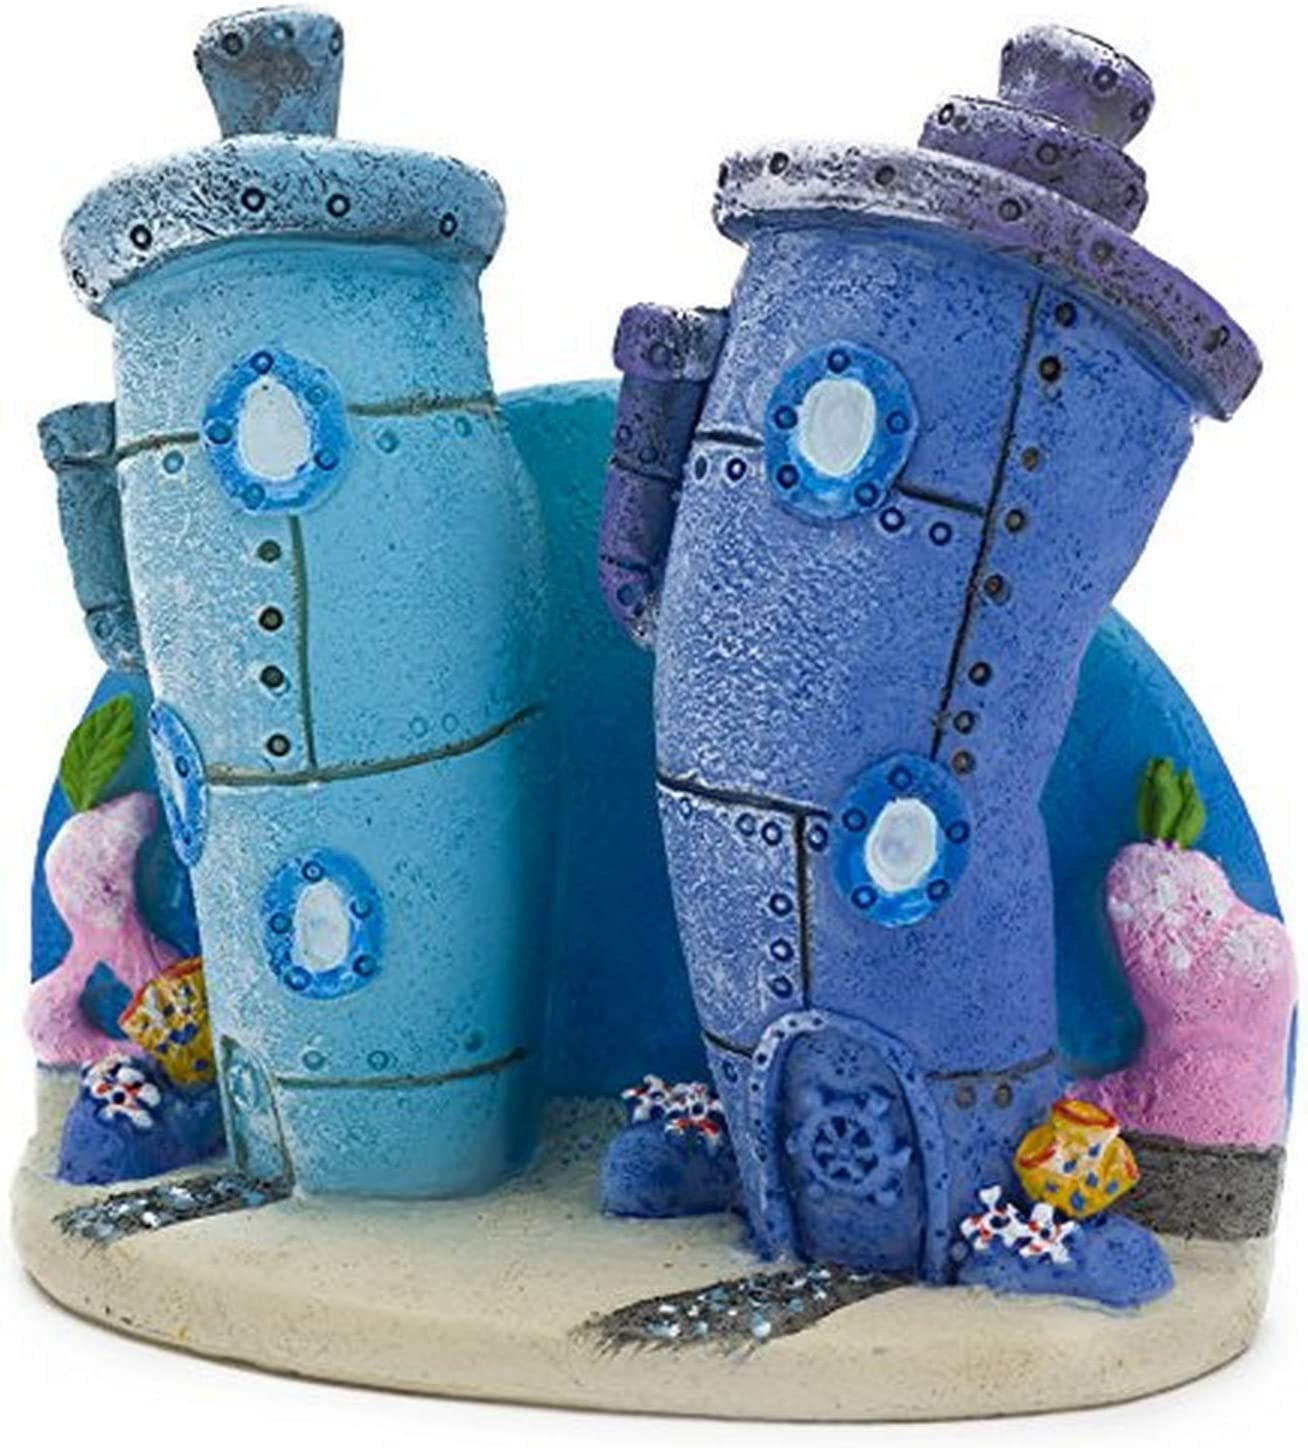 Penn Plax Spongebob Bikini Bottom Homes Aquarium Ornament